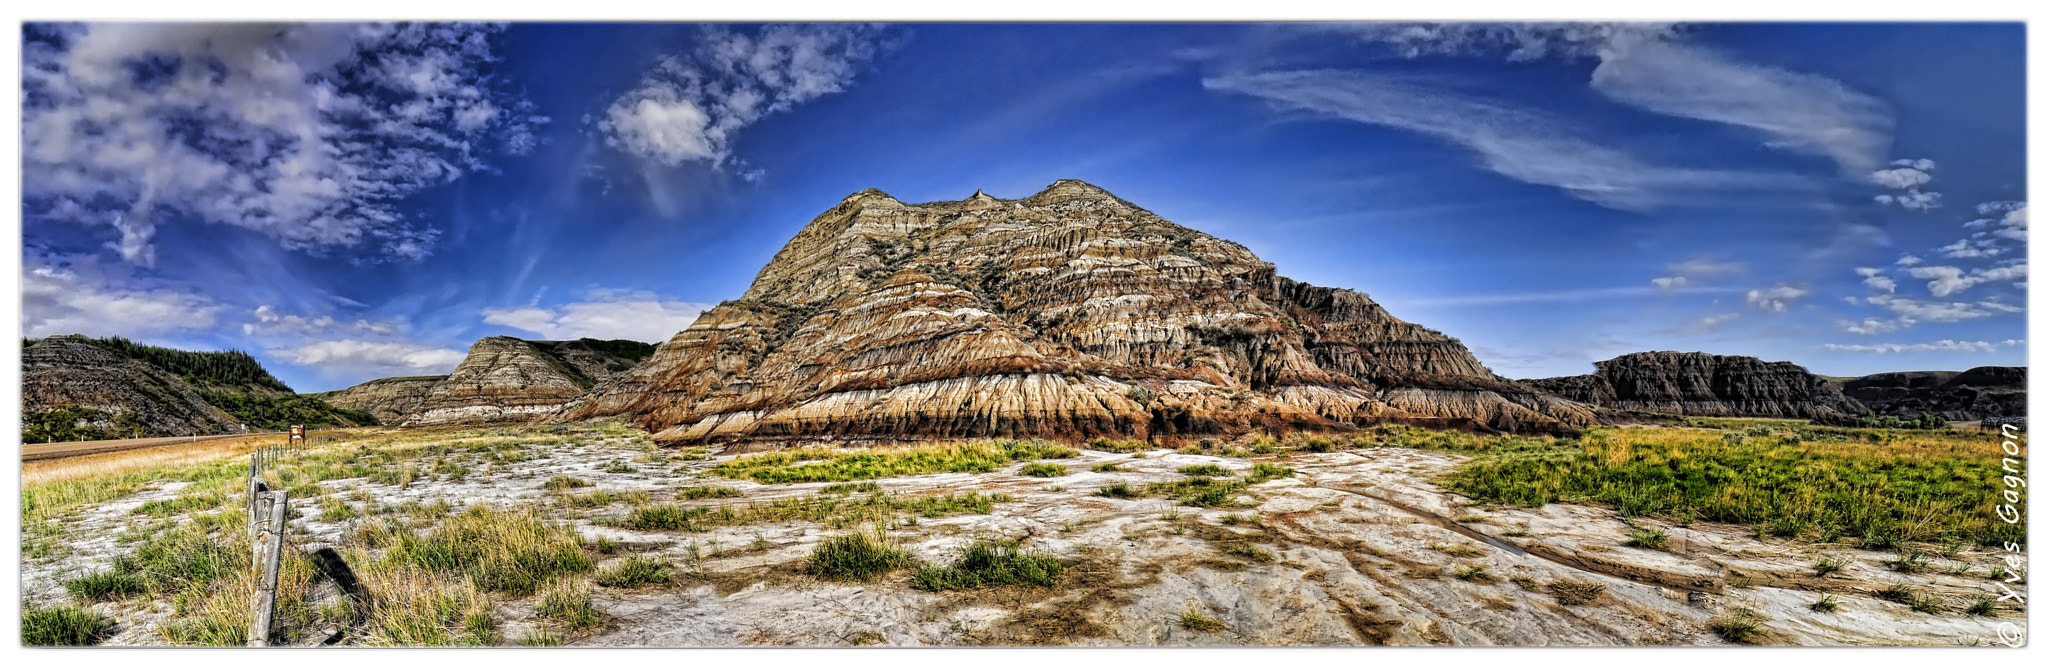 Photograph The Badlands  by Yves Gagnon on 500px